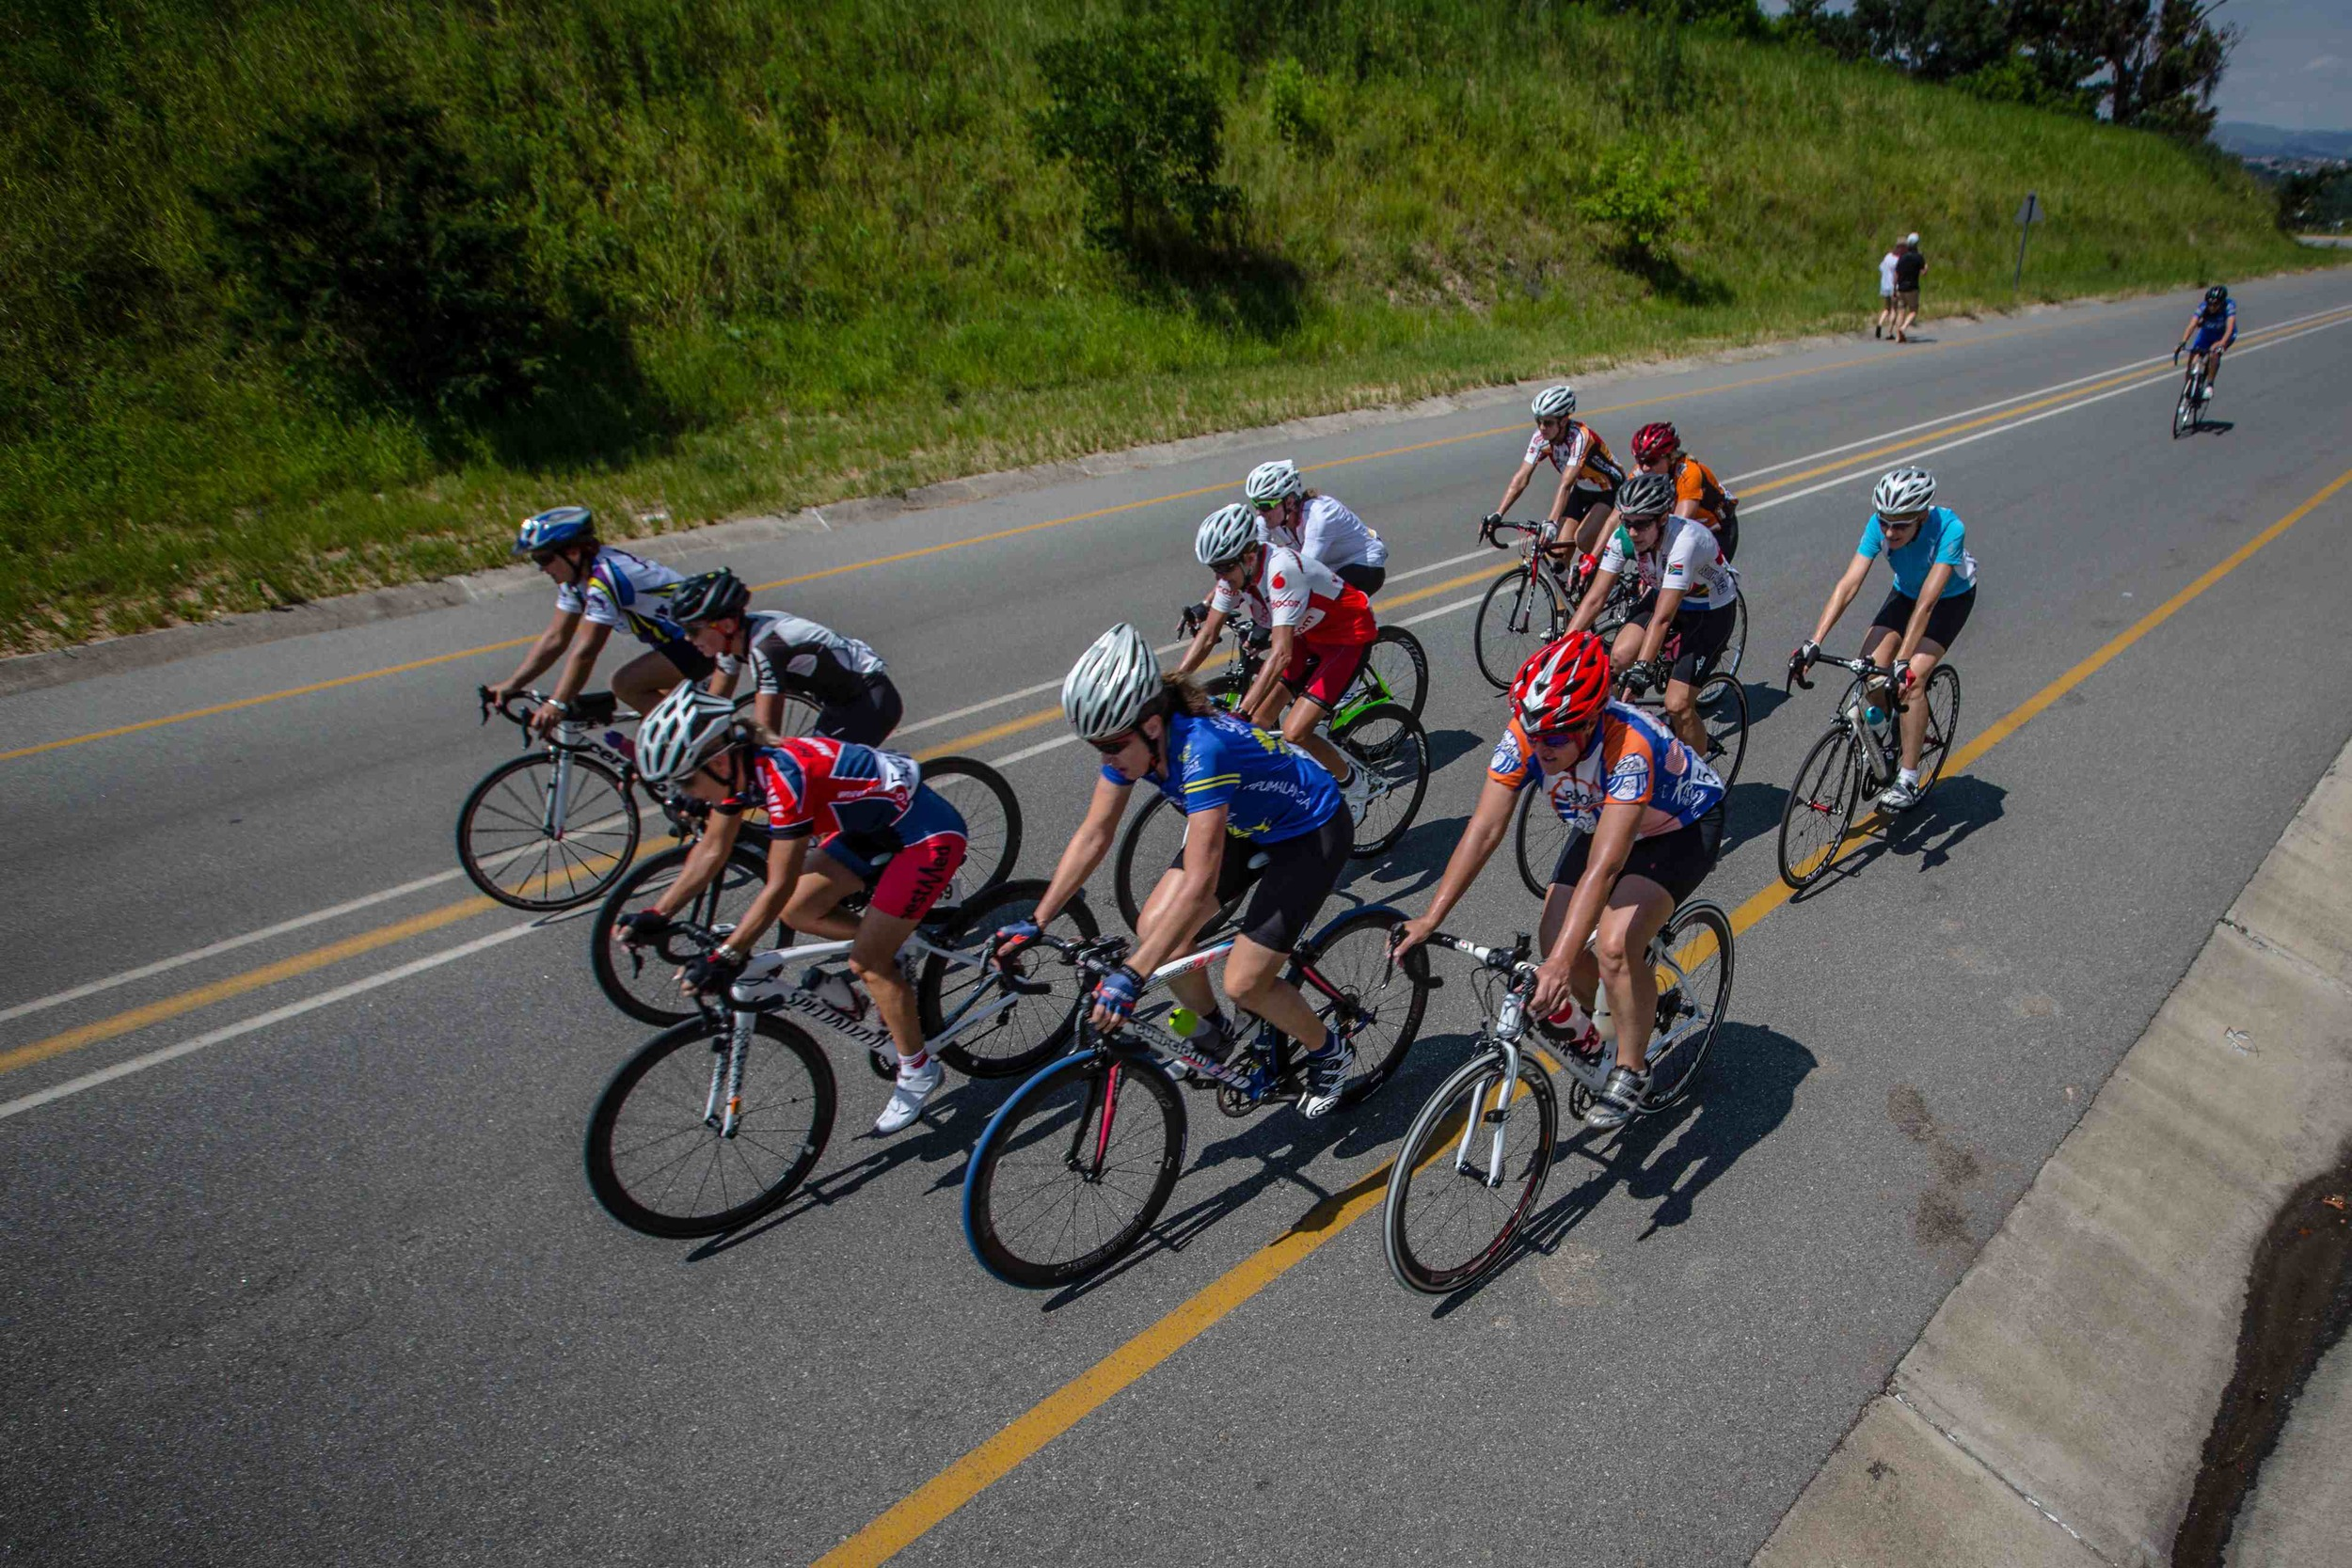 The Tsogo Sun Amashova Durban Classic road cycle race is the only African qualifying event for the 2016 UCI World Cycling Tour (UWCT) final , taking place from Pietermaritzburg to Durban on 18 October 2015. Photo: Craig Dutton/pics2go.co.za